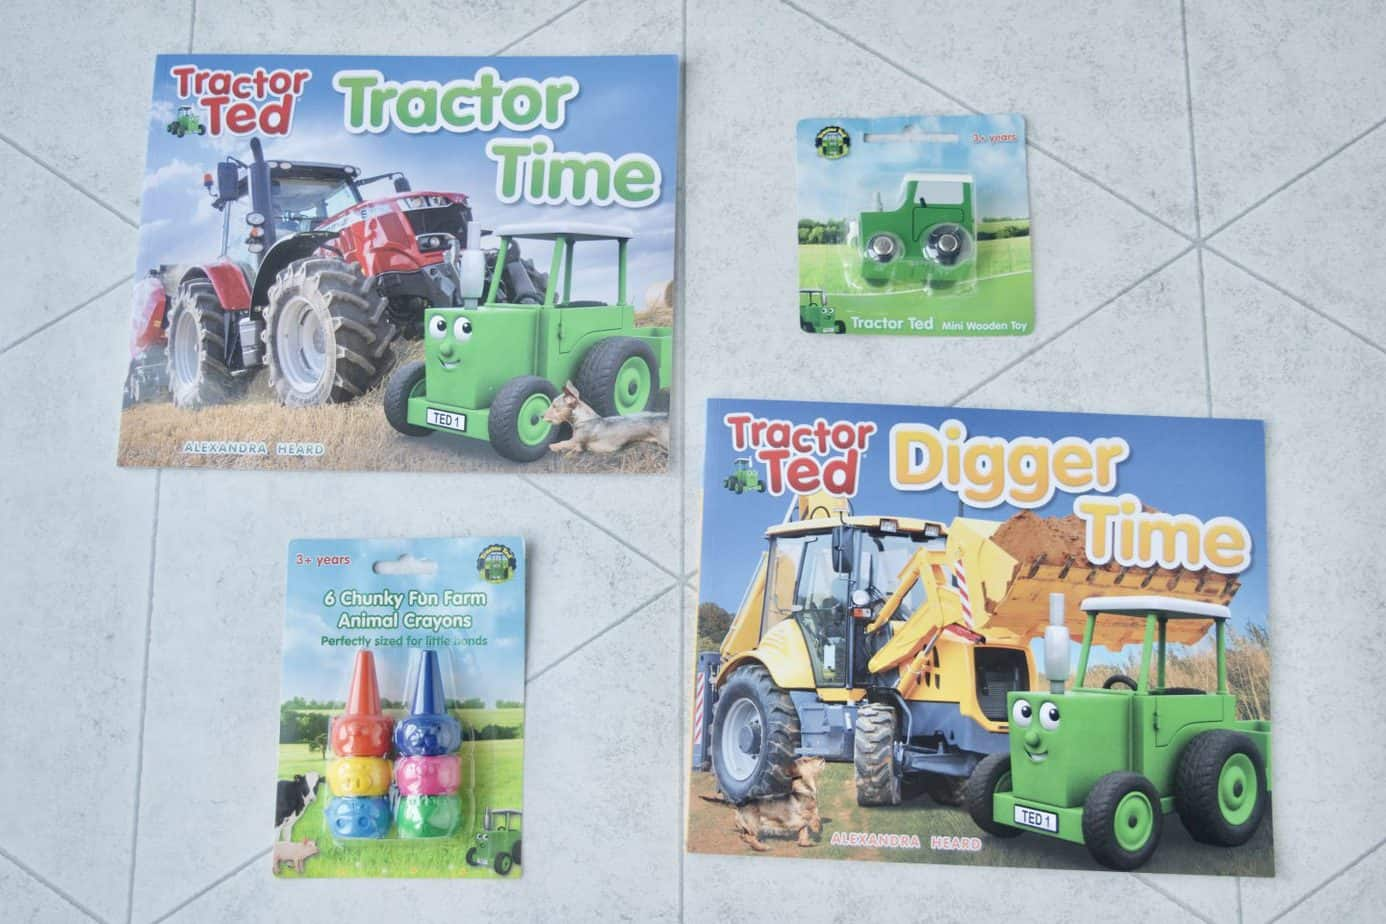 Our lovely items from Tractor Ted including 2 x books, a wooden toy and a pack of crayons